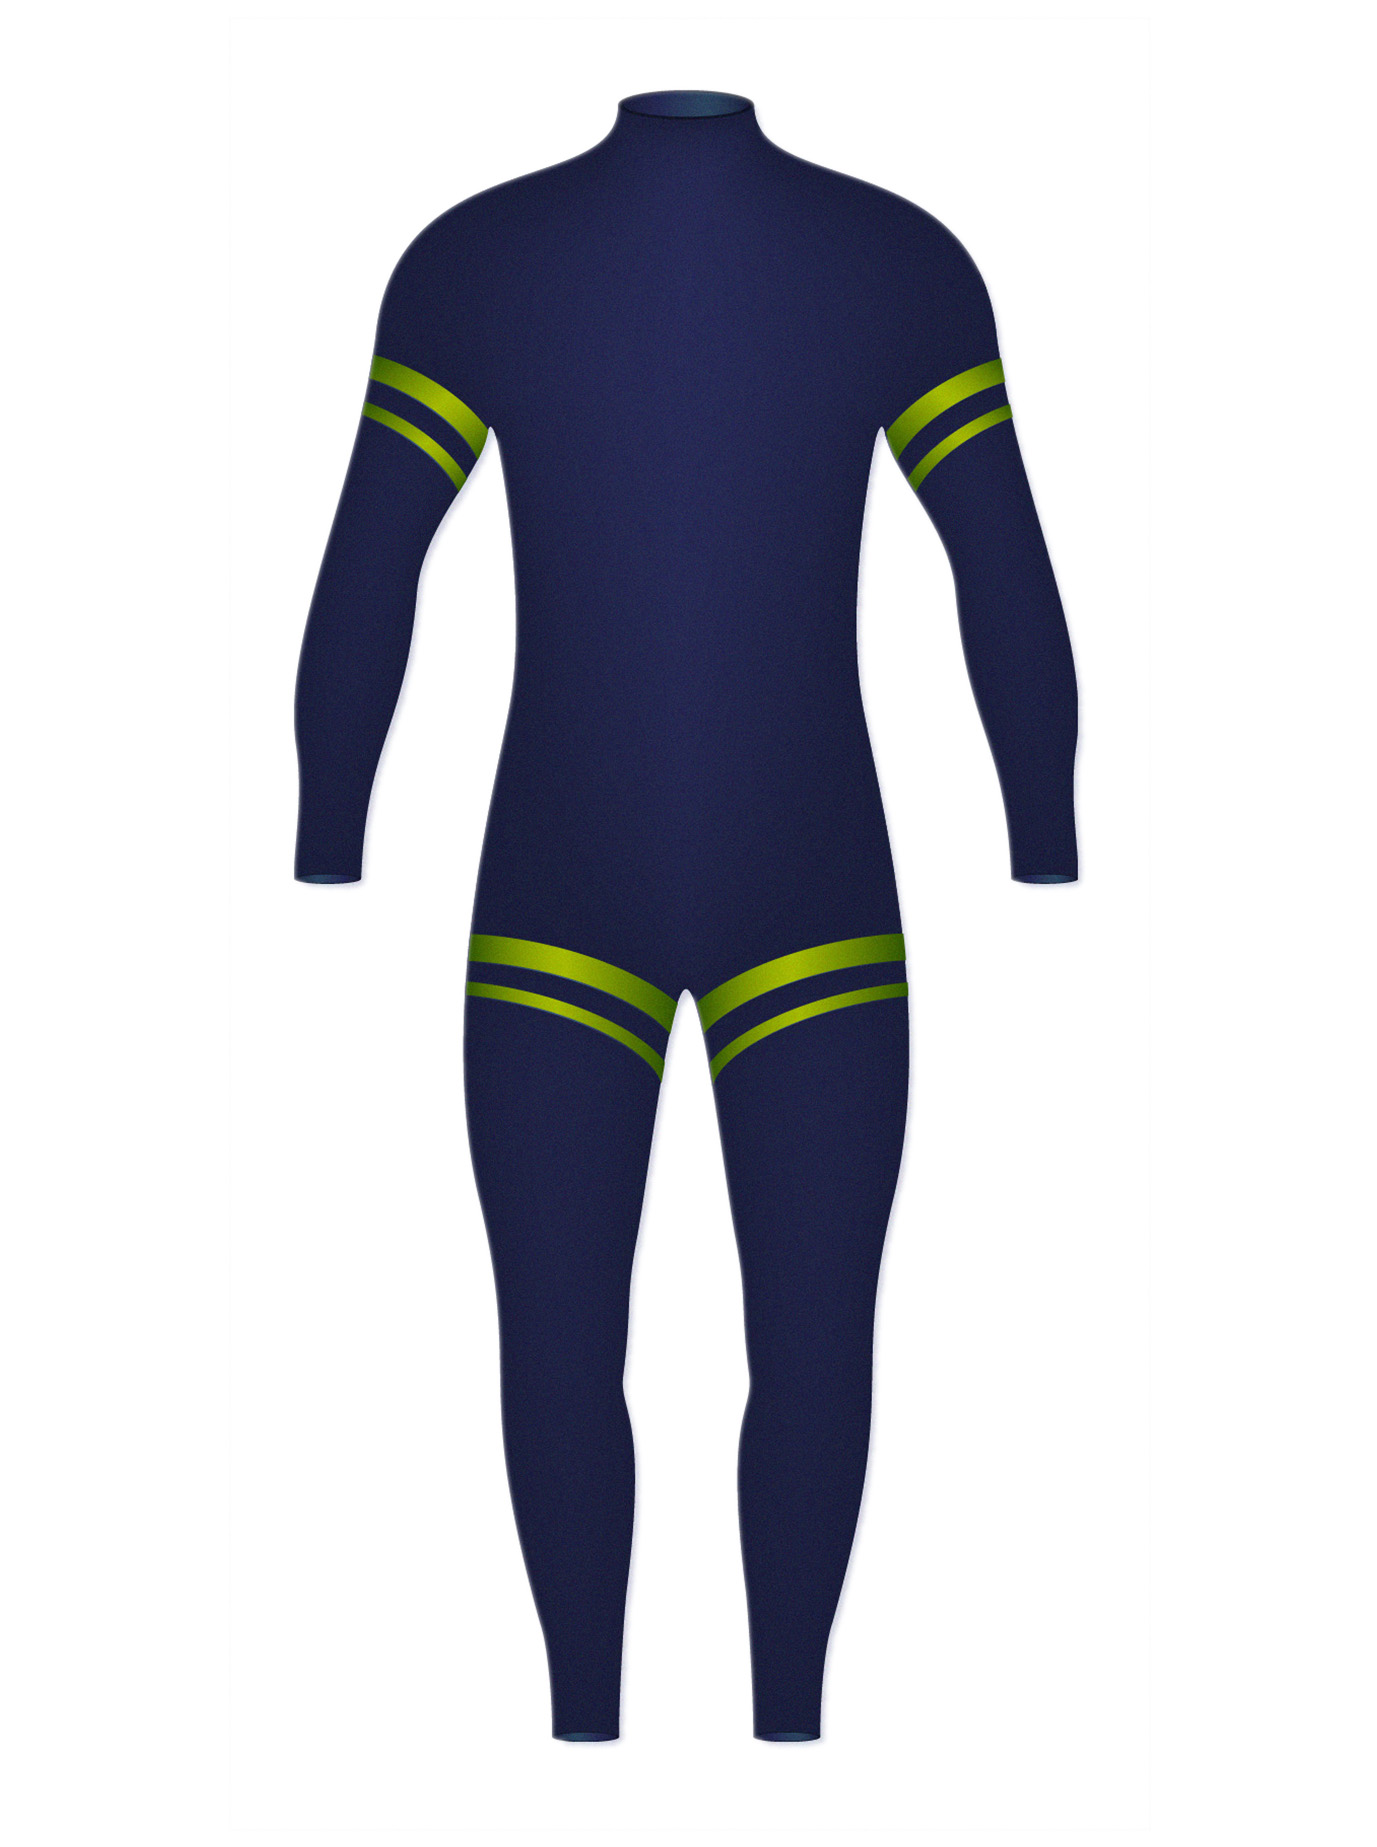 Blue and green wetsuit